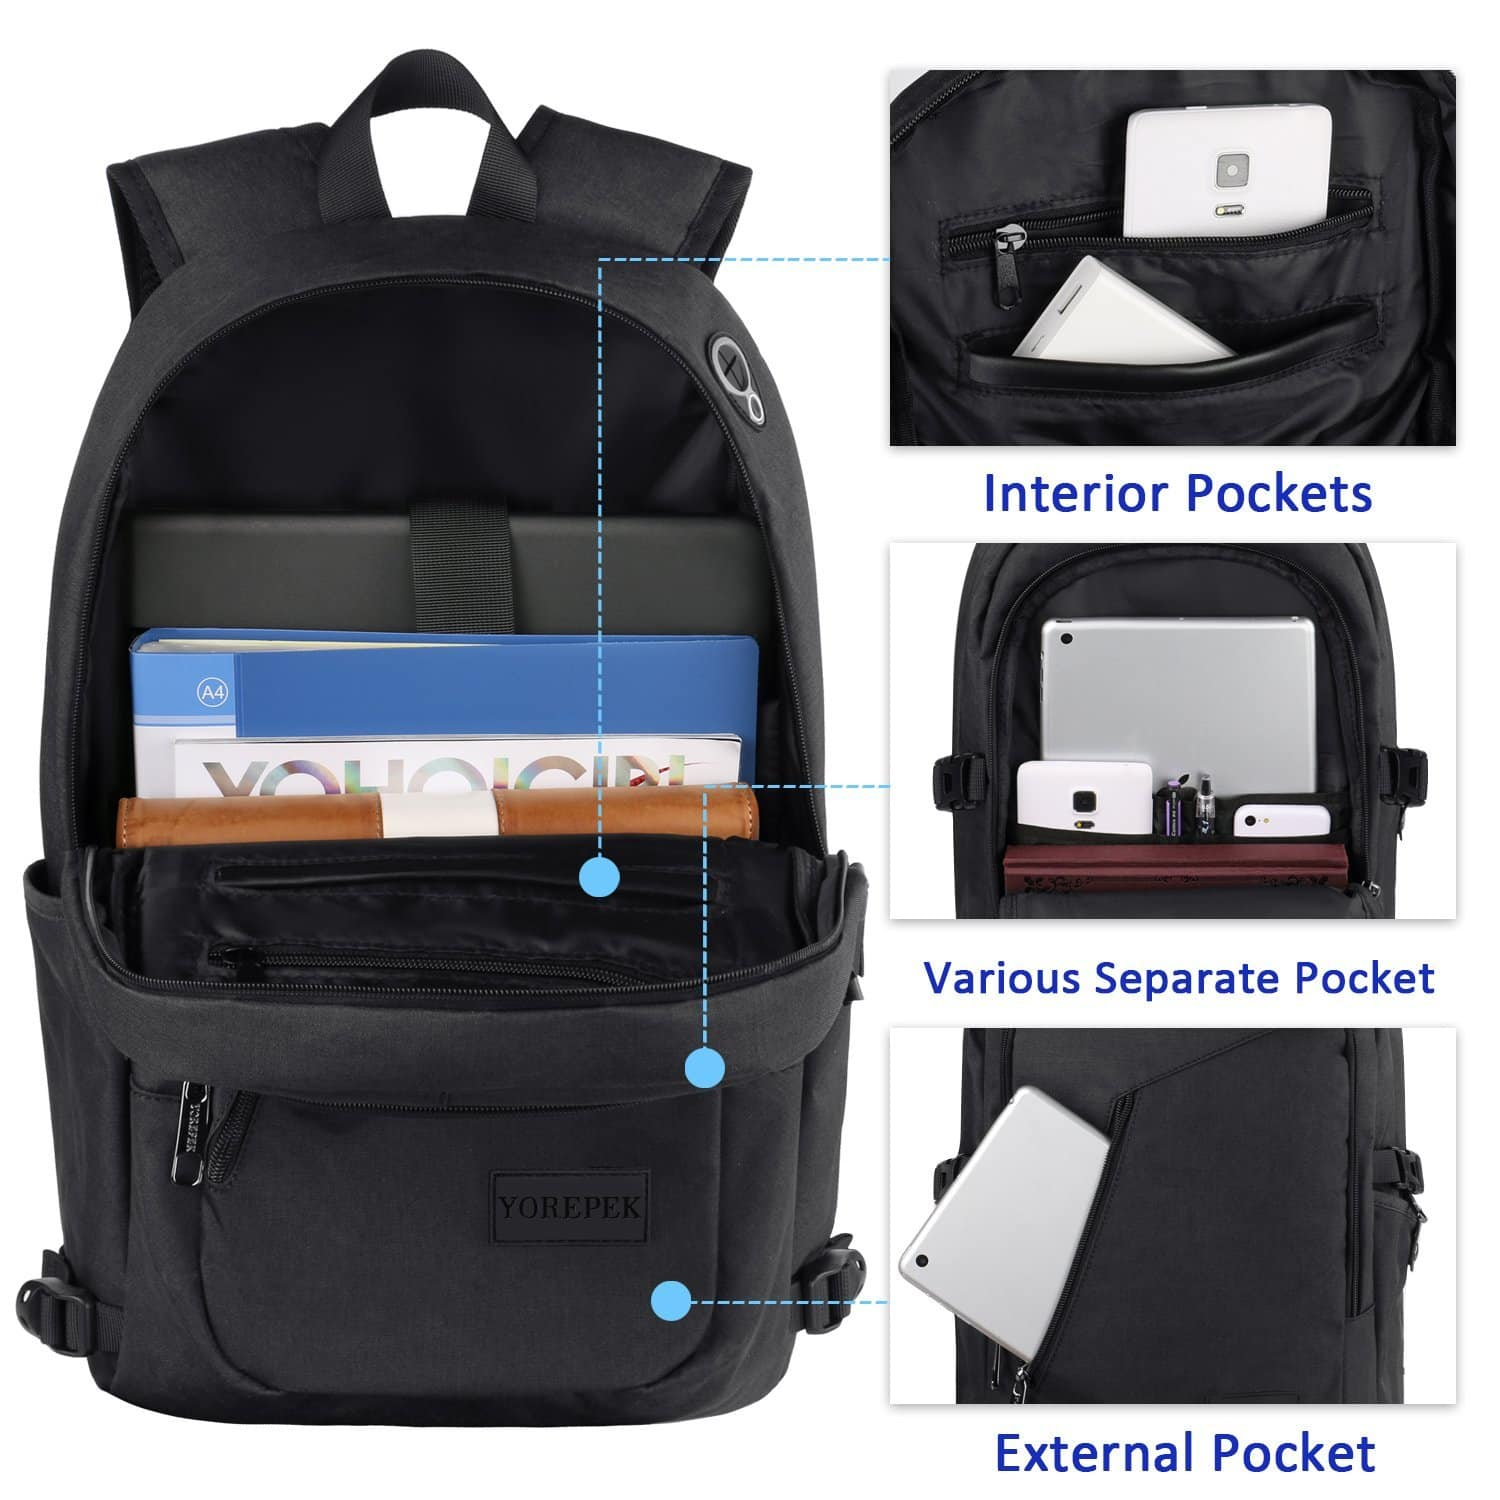 Yorepek: Laptop Backpack w/ USB charging, Headphones Port for 15.6 Inch Laptop, $16.99 + AC/Shipping